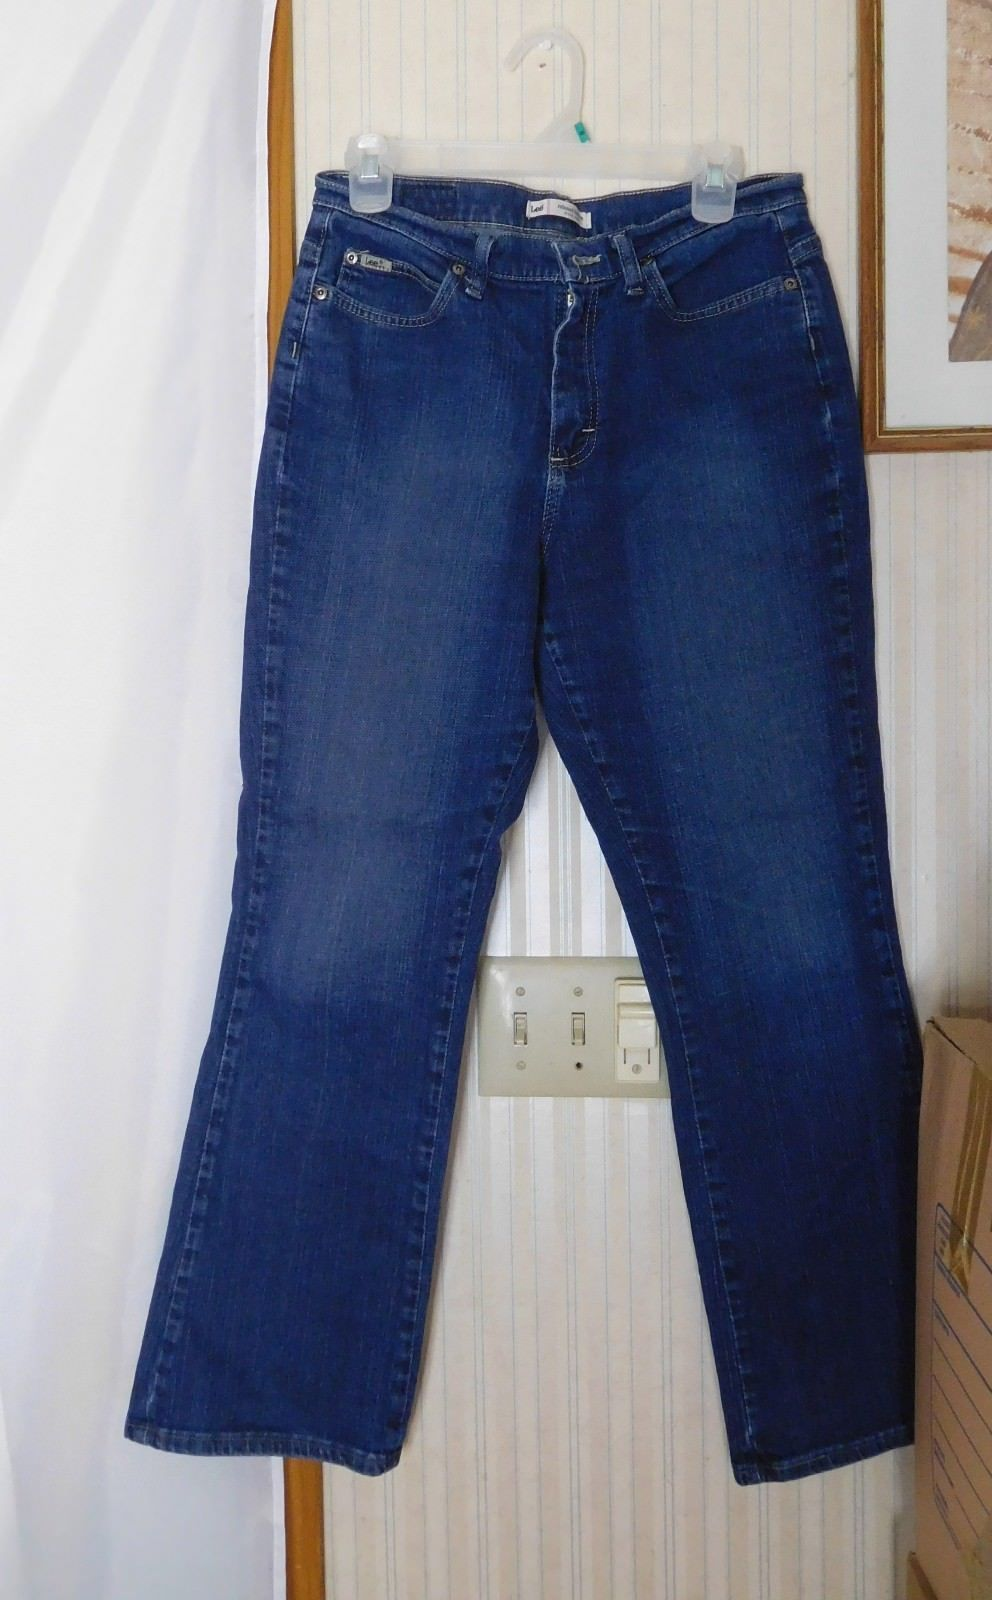 13c204a5 S l1600. S l1600. Previous. Lee Women's Jeans Size 10 Short Relaxed at the  Waist Bootcut Mom Jeans 11